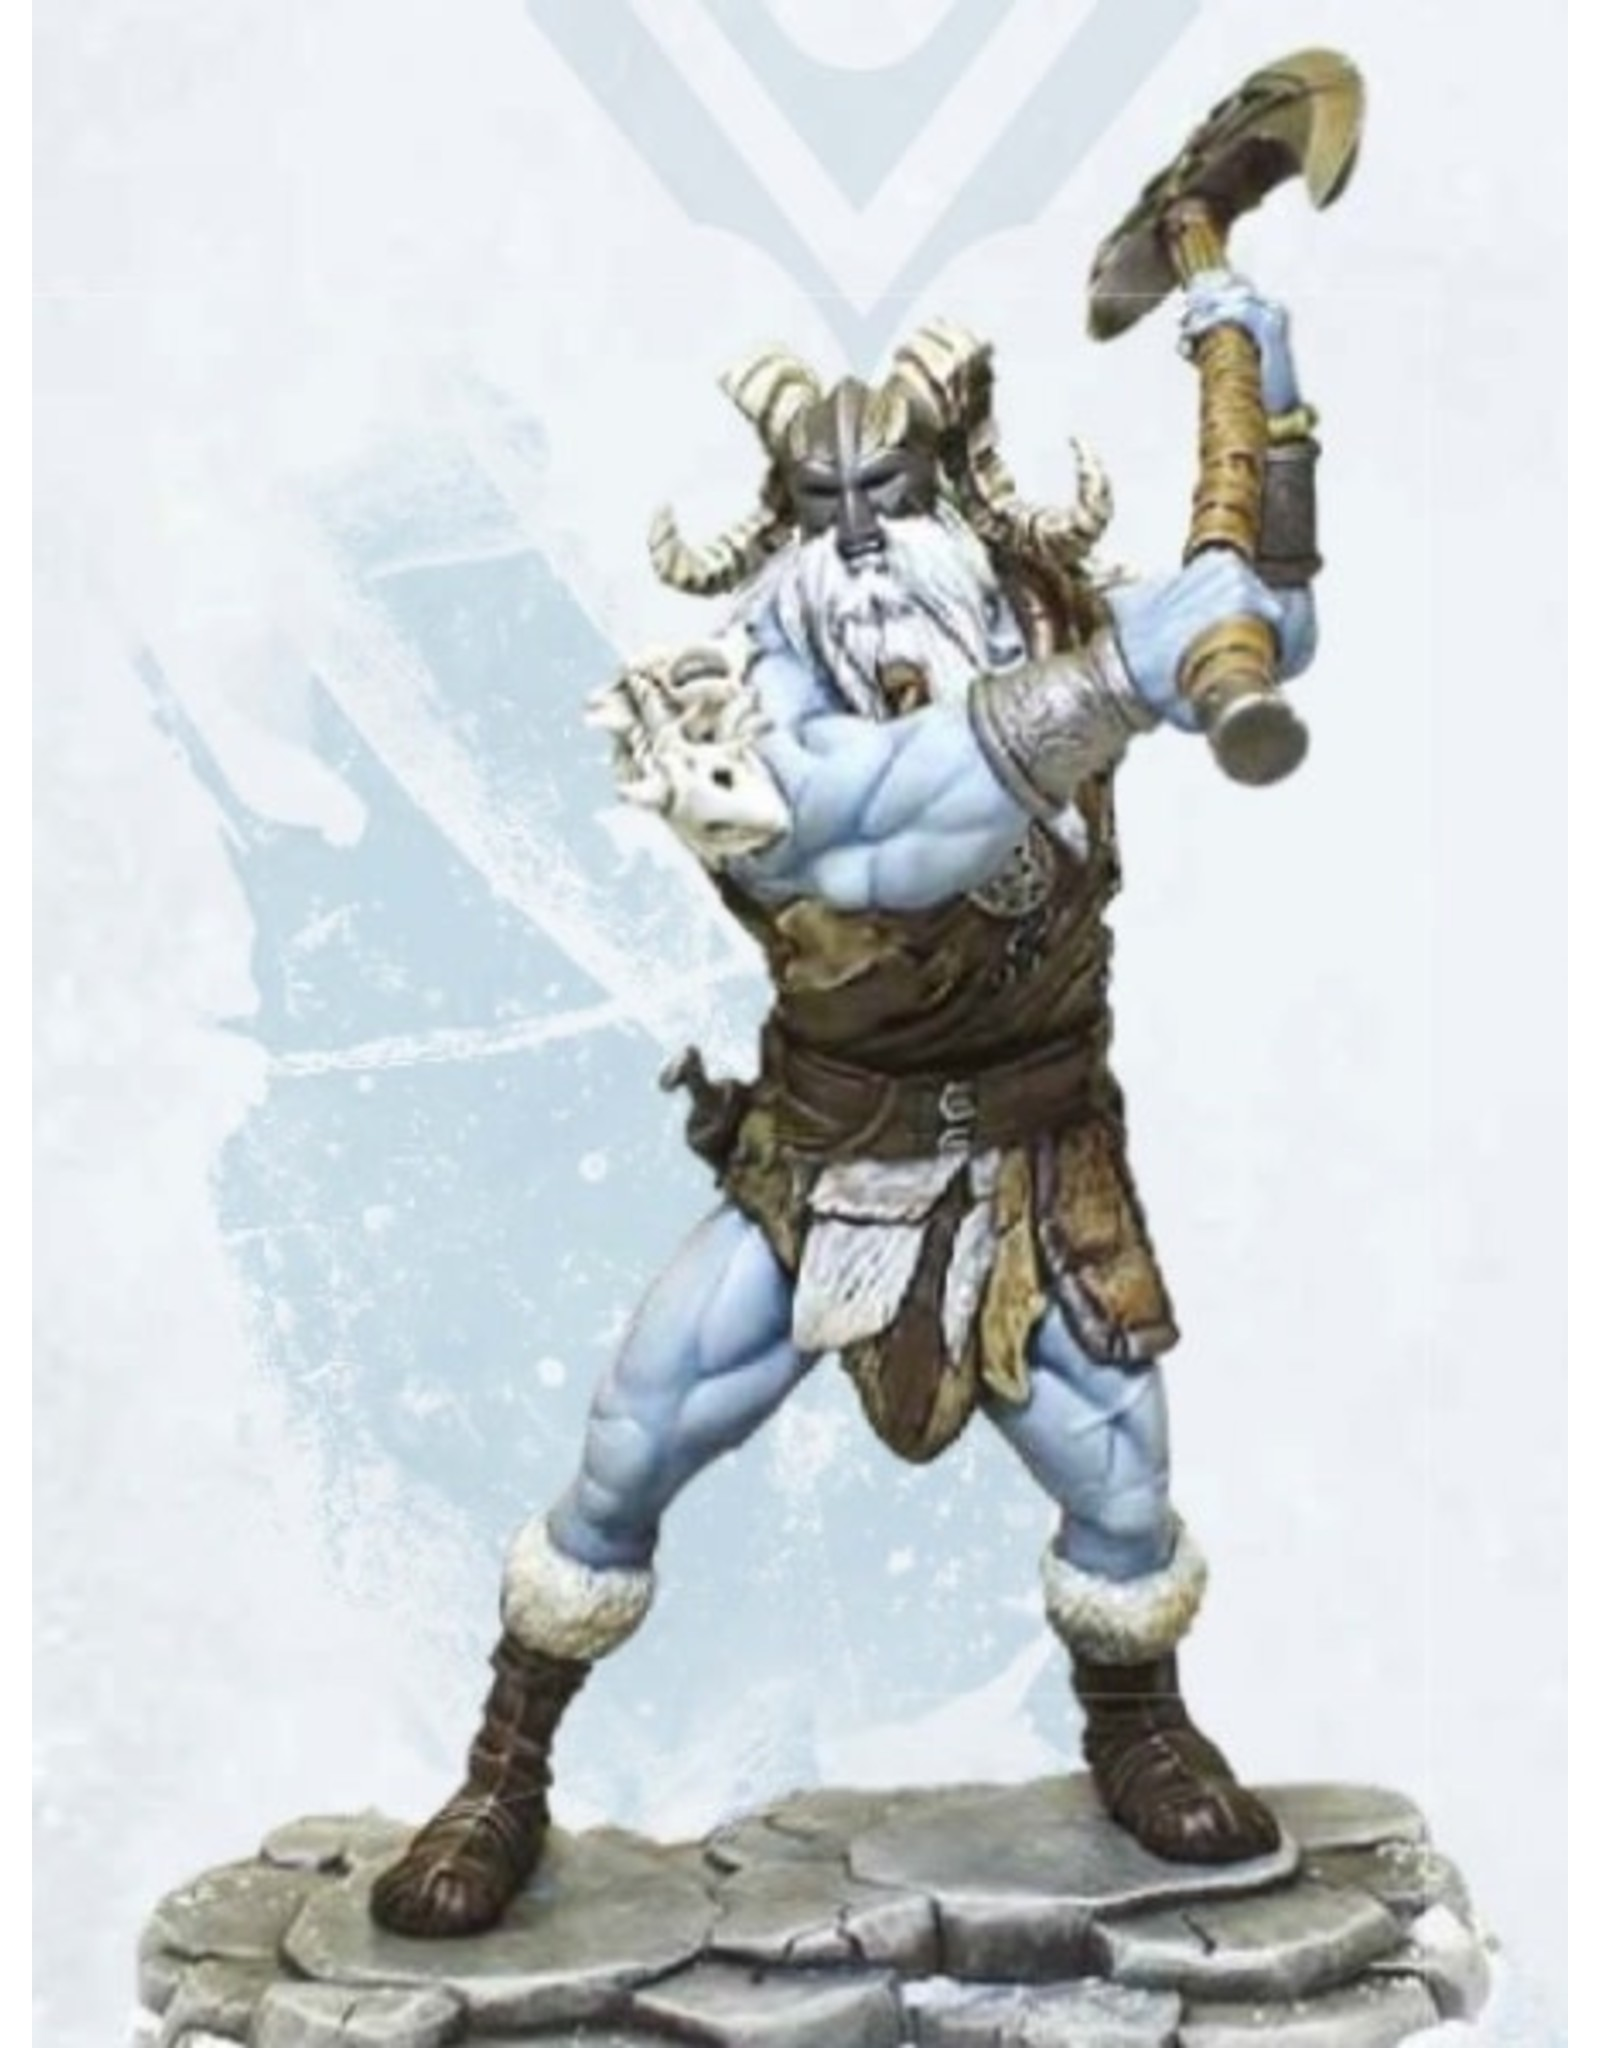 Gale Force 9 Dungeons & Dragons: Icewind Dale: Rime of the Frostmaiden Mini - Frost Giant Ravager